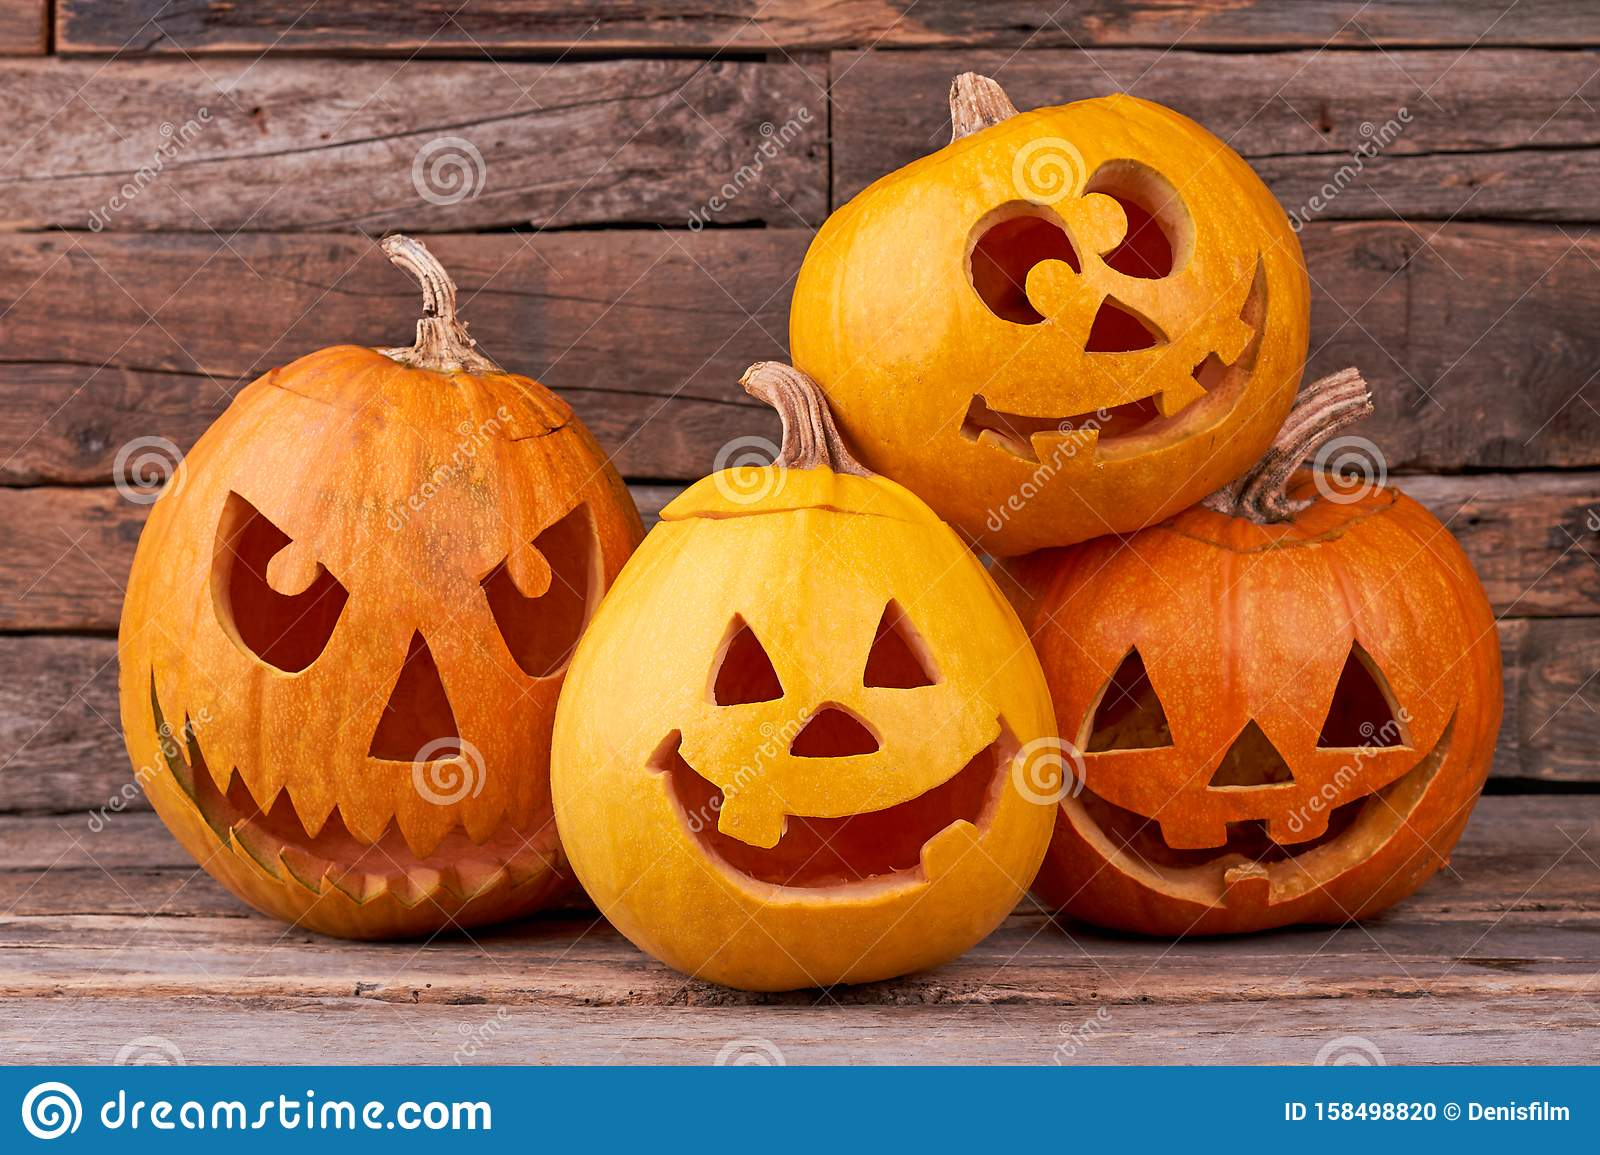 Funny Halloween Pumpkins On Wooden Background Stock Photo Image Of Background Holiday 158498820